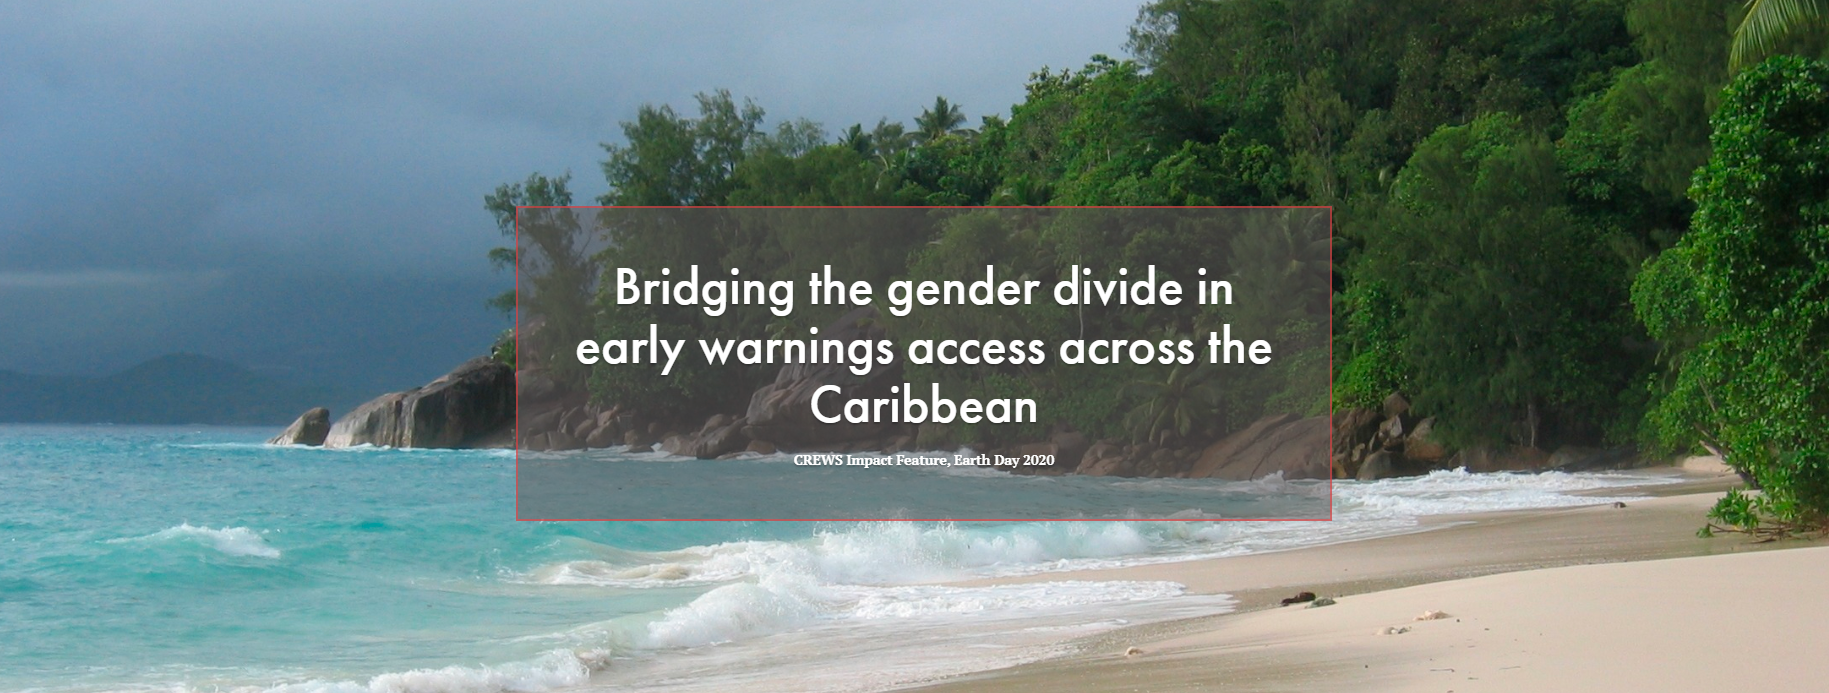 Bridging the gender divide in early warnings access across the Caribbean.